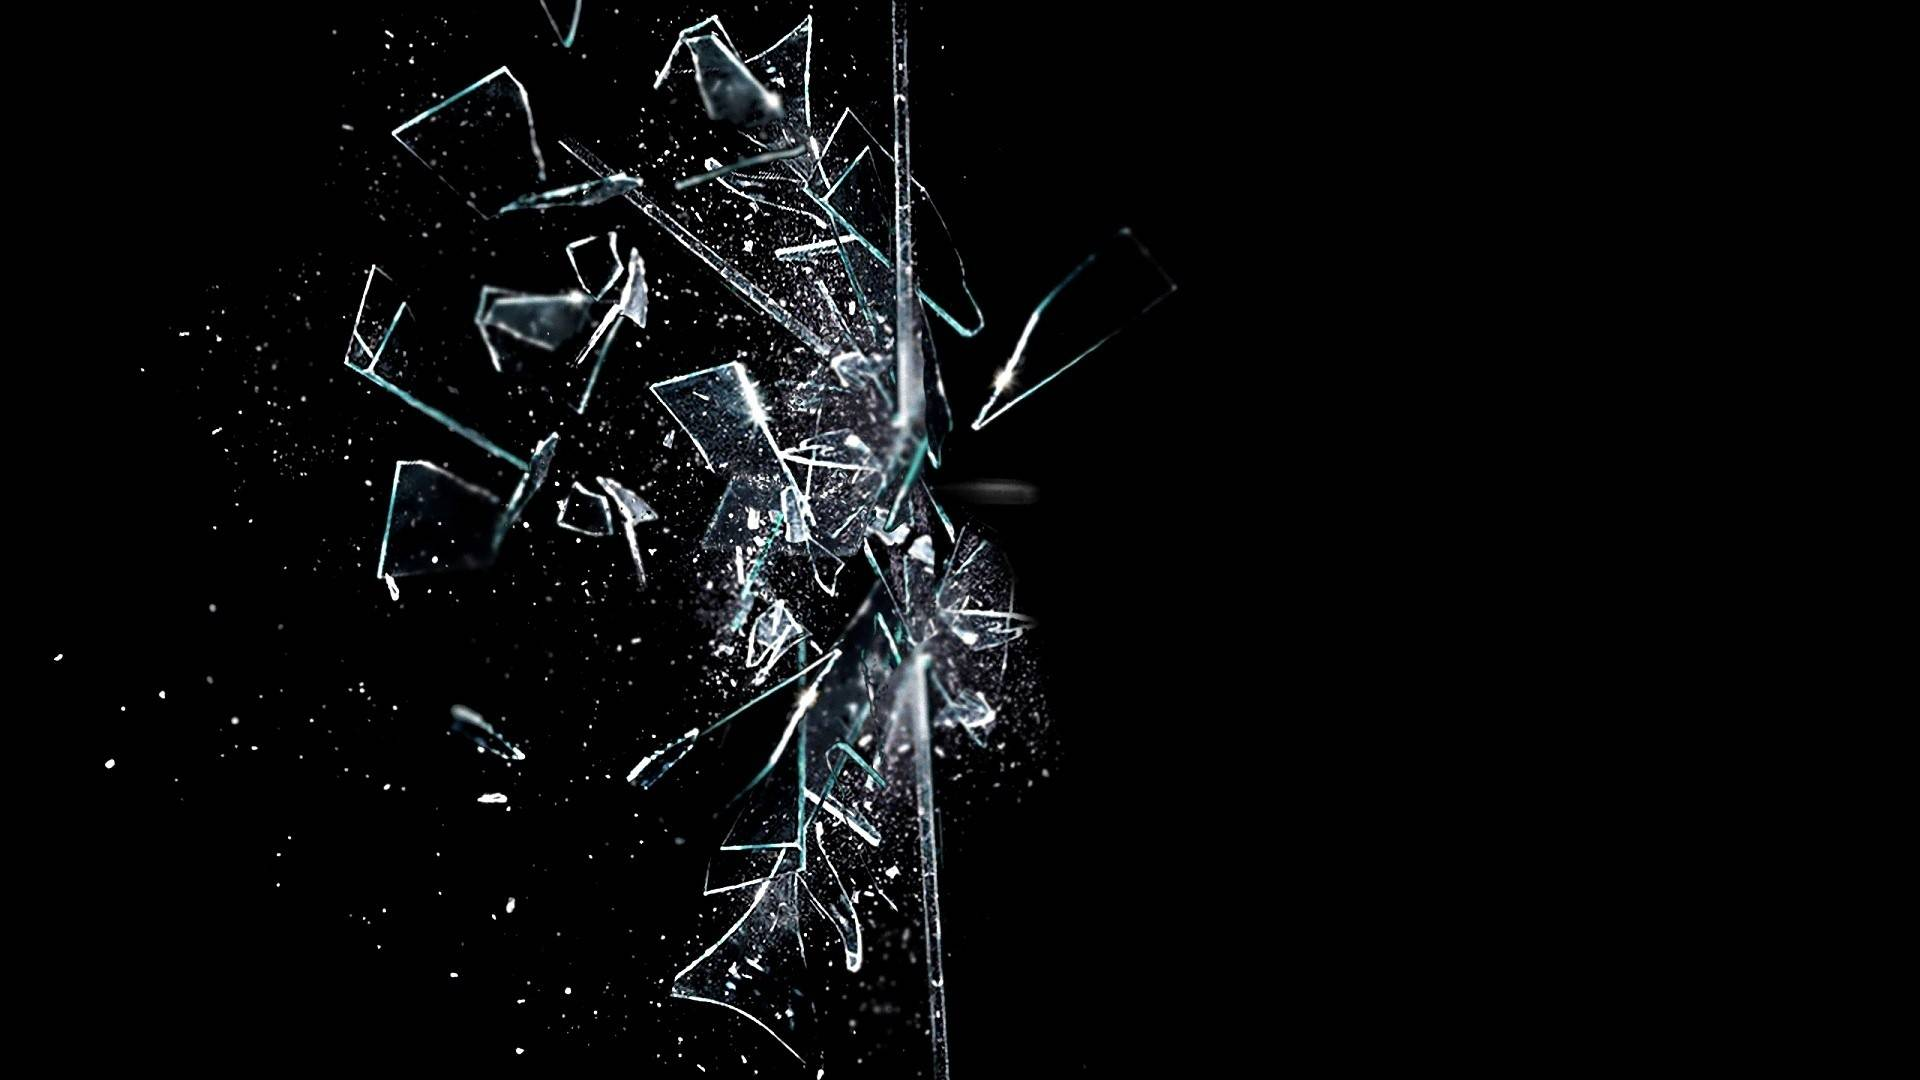 Shattered glass background photo